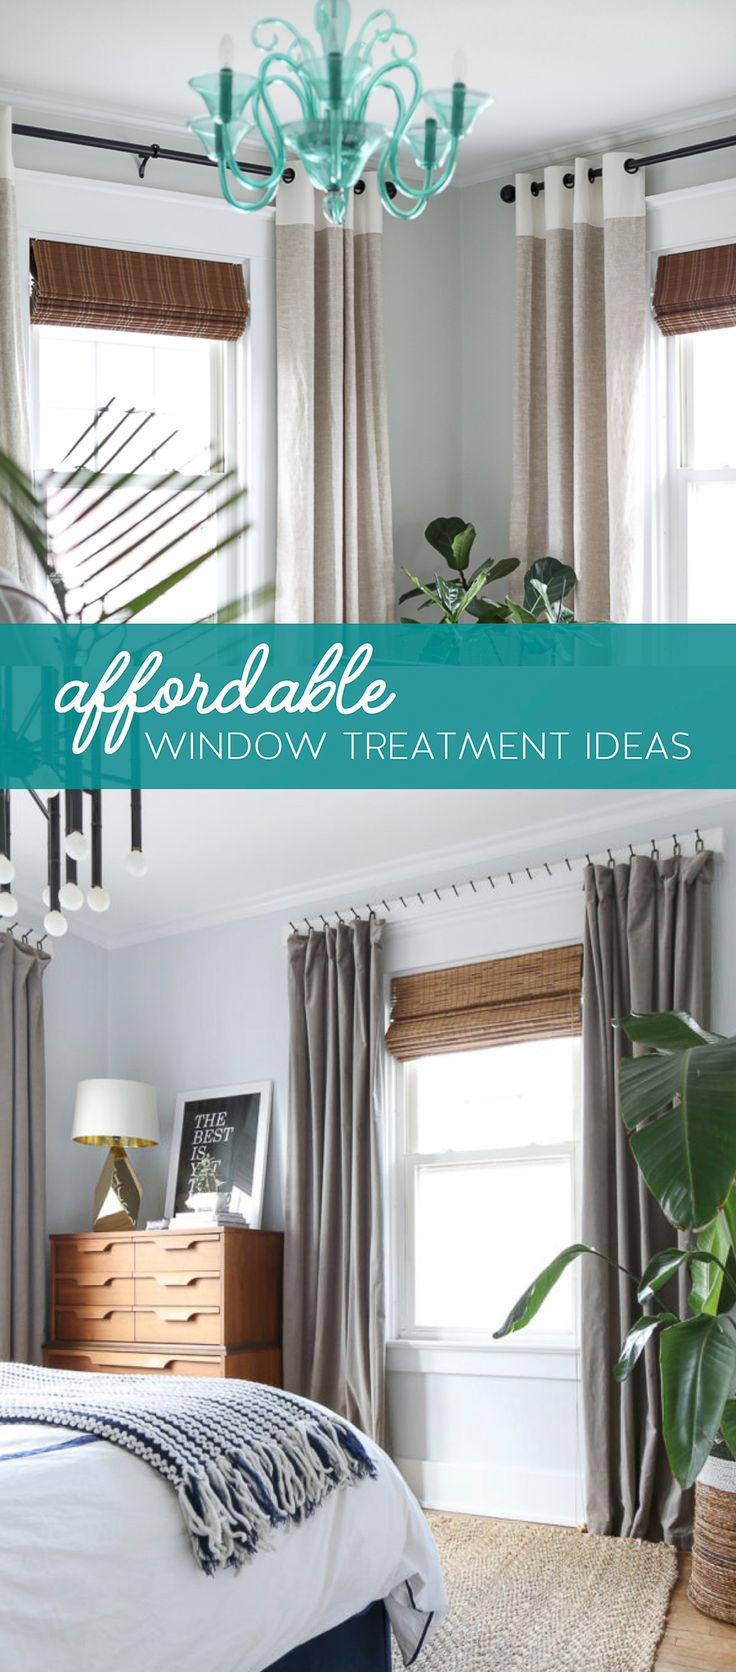 Camper window treatments - Ideas For Affordable Window Treatments